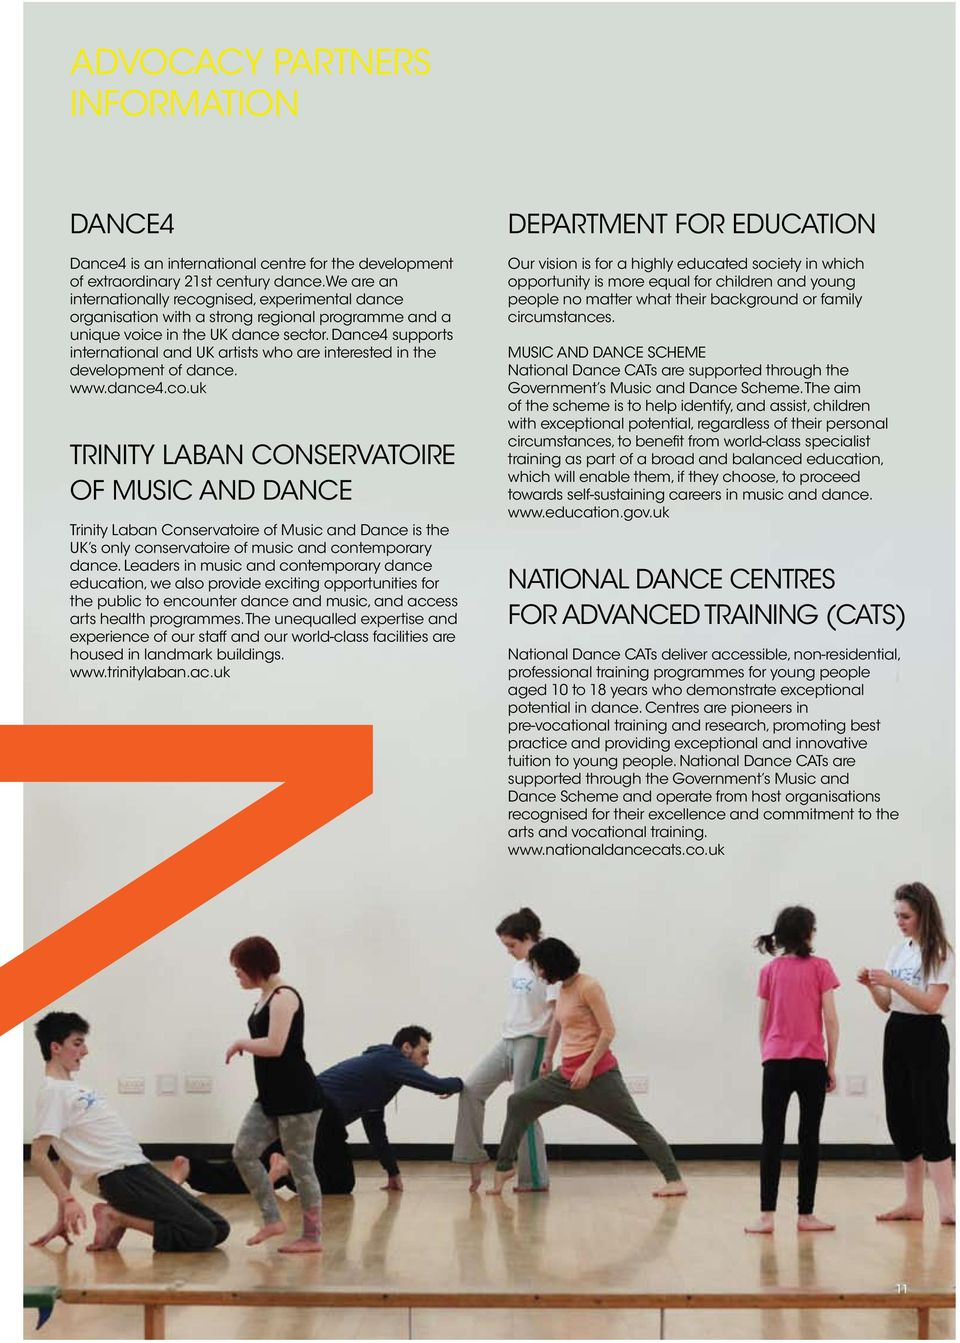 Dance4 supports international and UK artists who are interested in the development of dance. www.dance4.co.